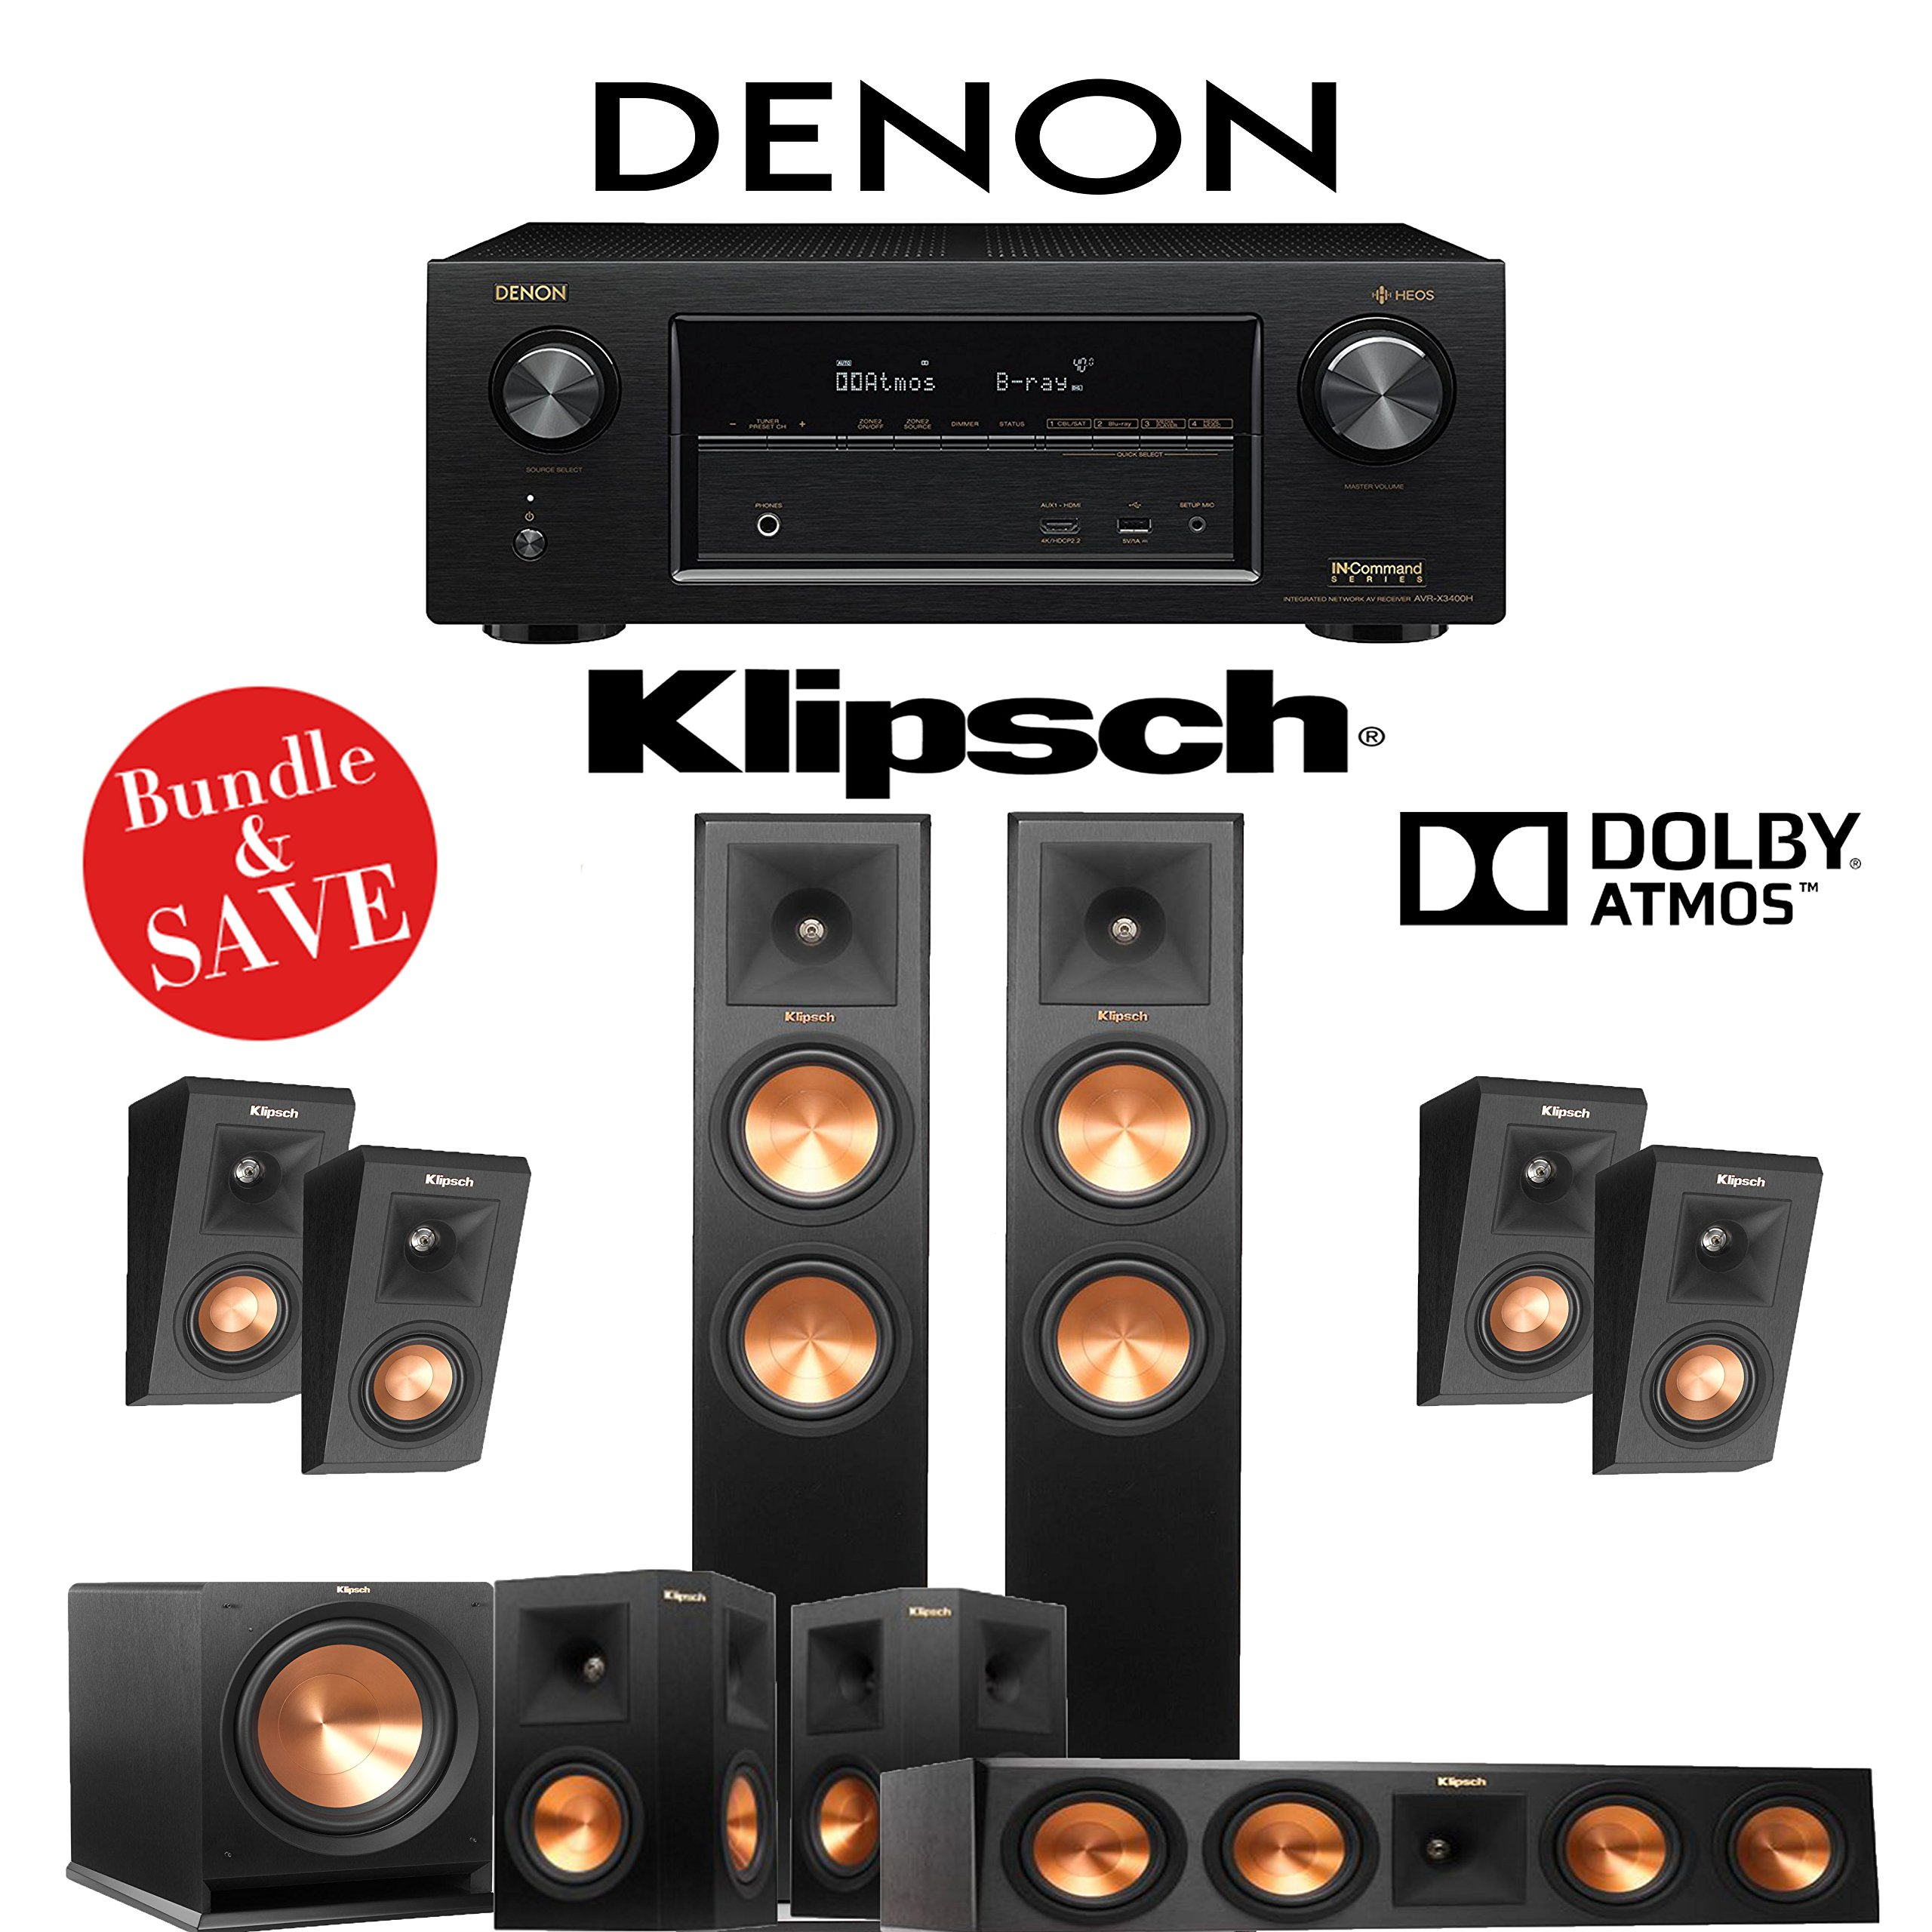 Klipsch RP-260F 5.1.4-Ch Reference Premiere Dolby Atmos Home Theater System with Denon AVR-X3400H 7.2-Channel 4K Network AV Receiver